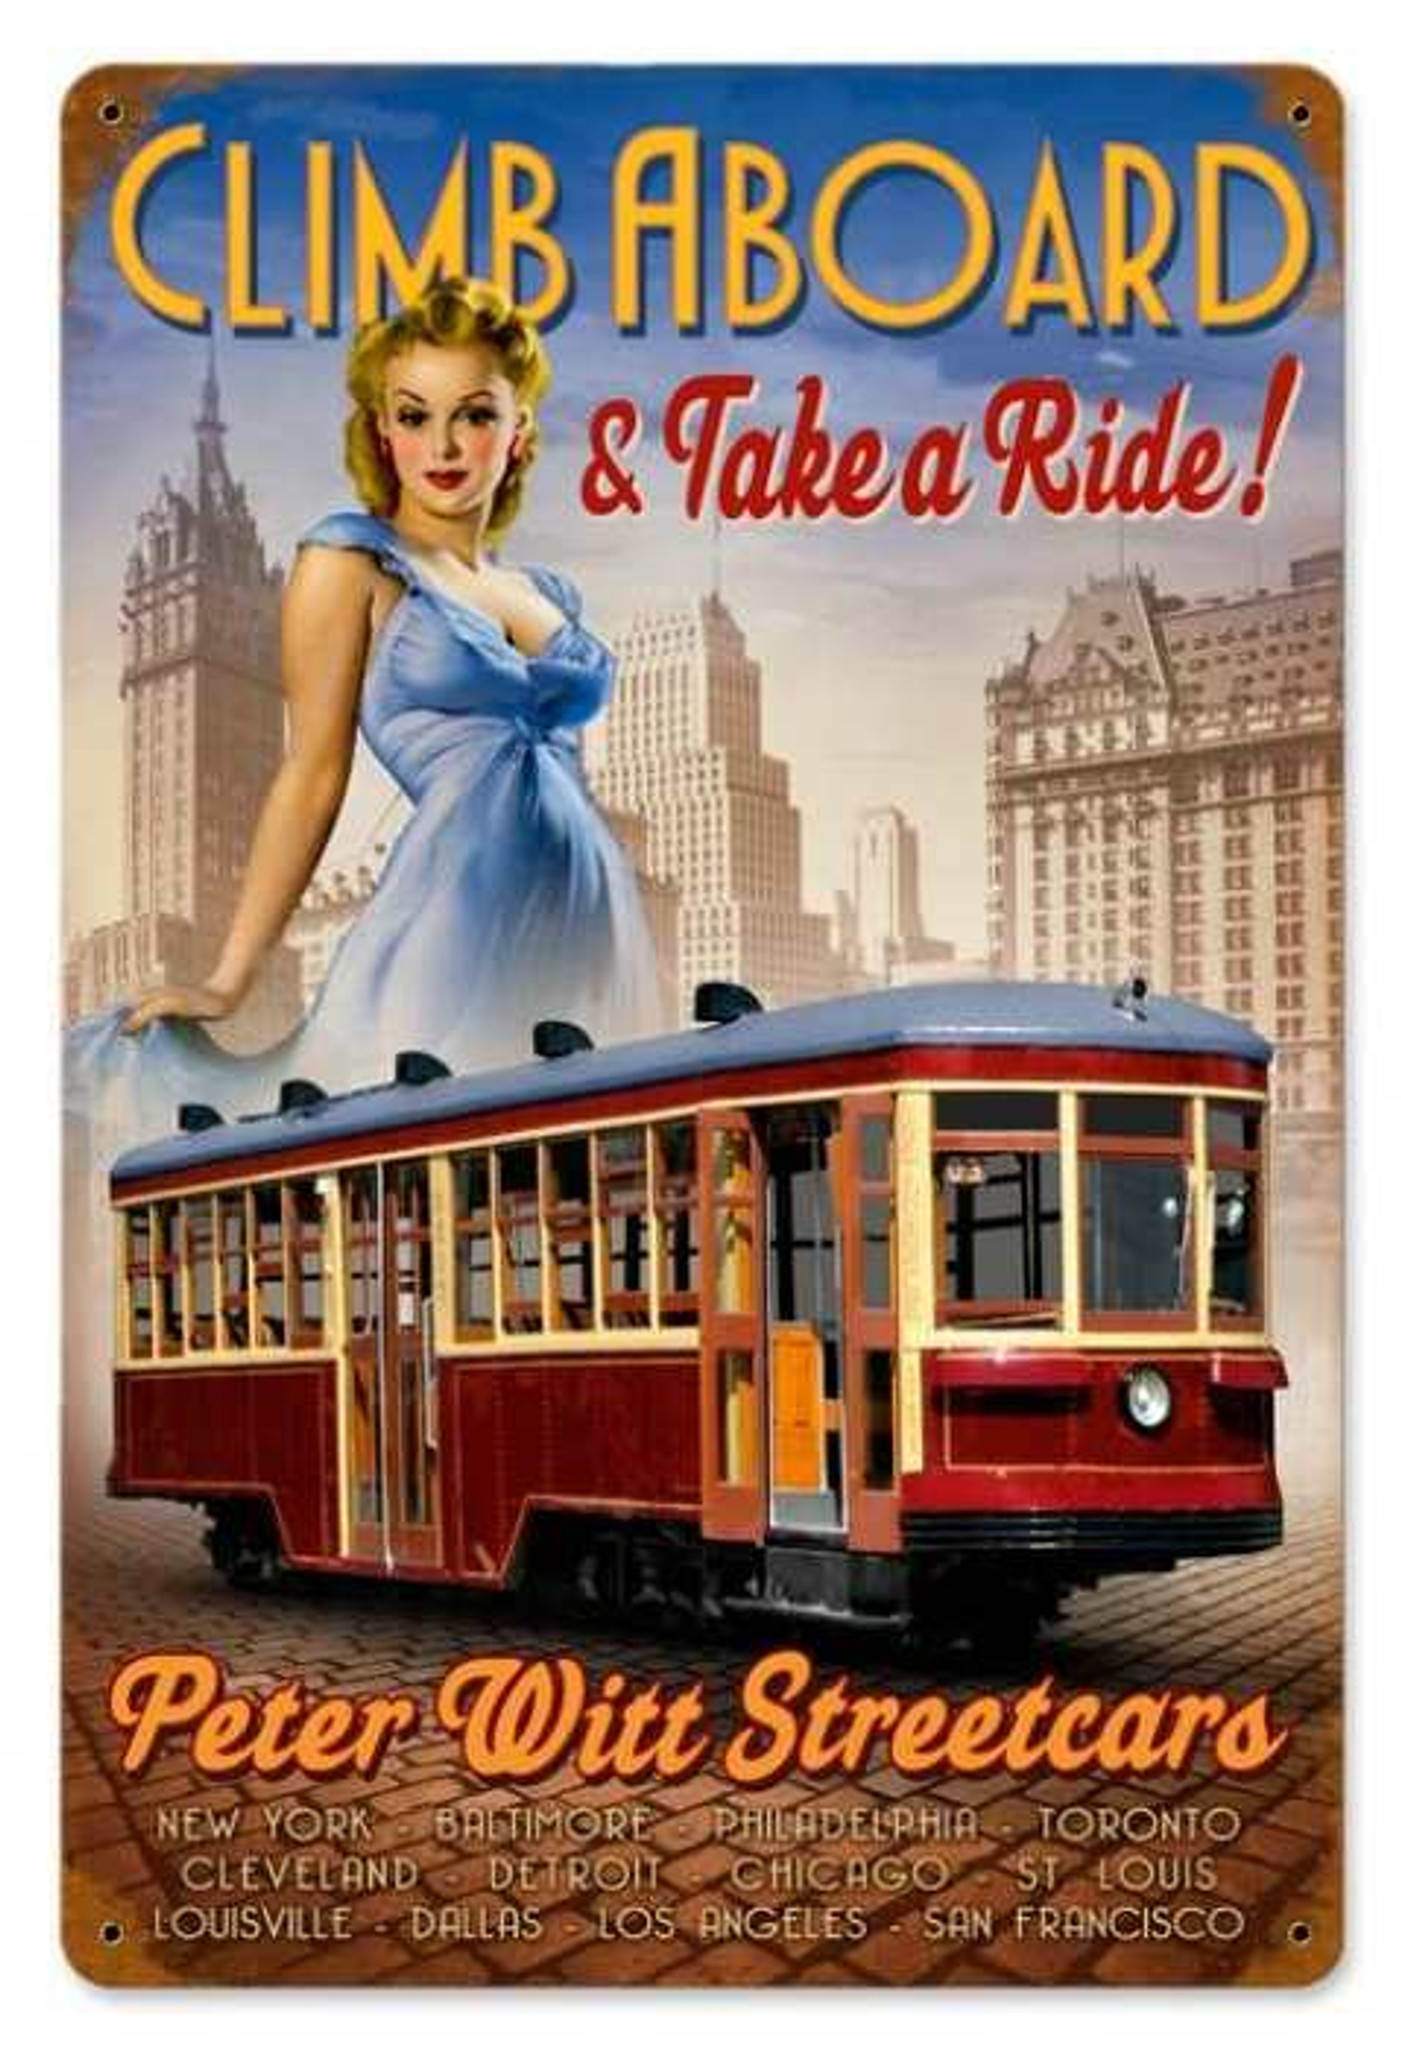 Retro Street Car Pin-Up Girl Metal Sign 18 x 12 Inches